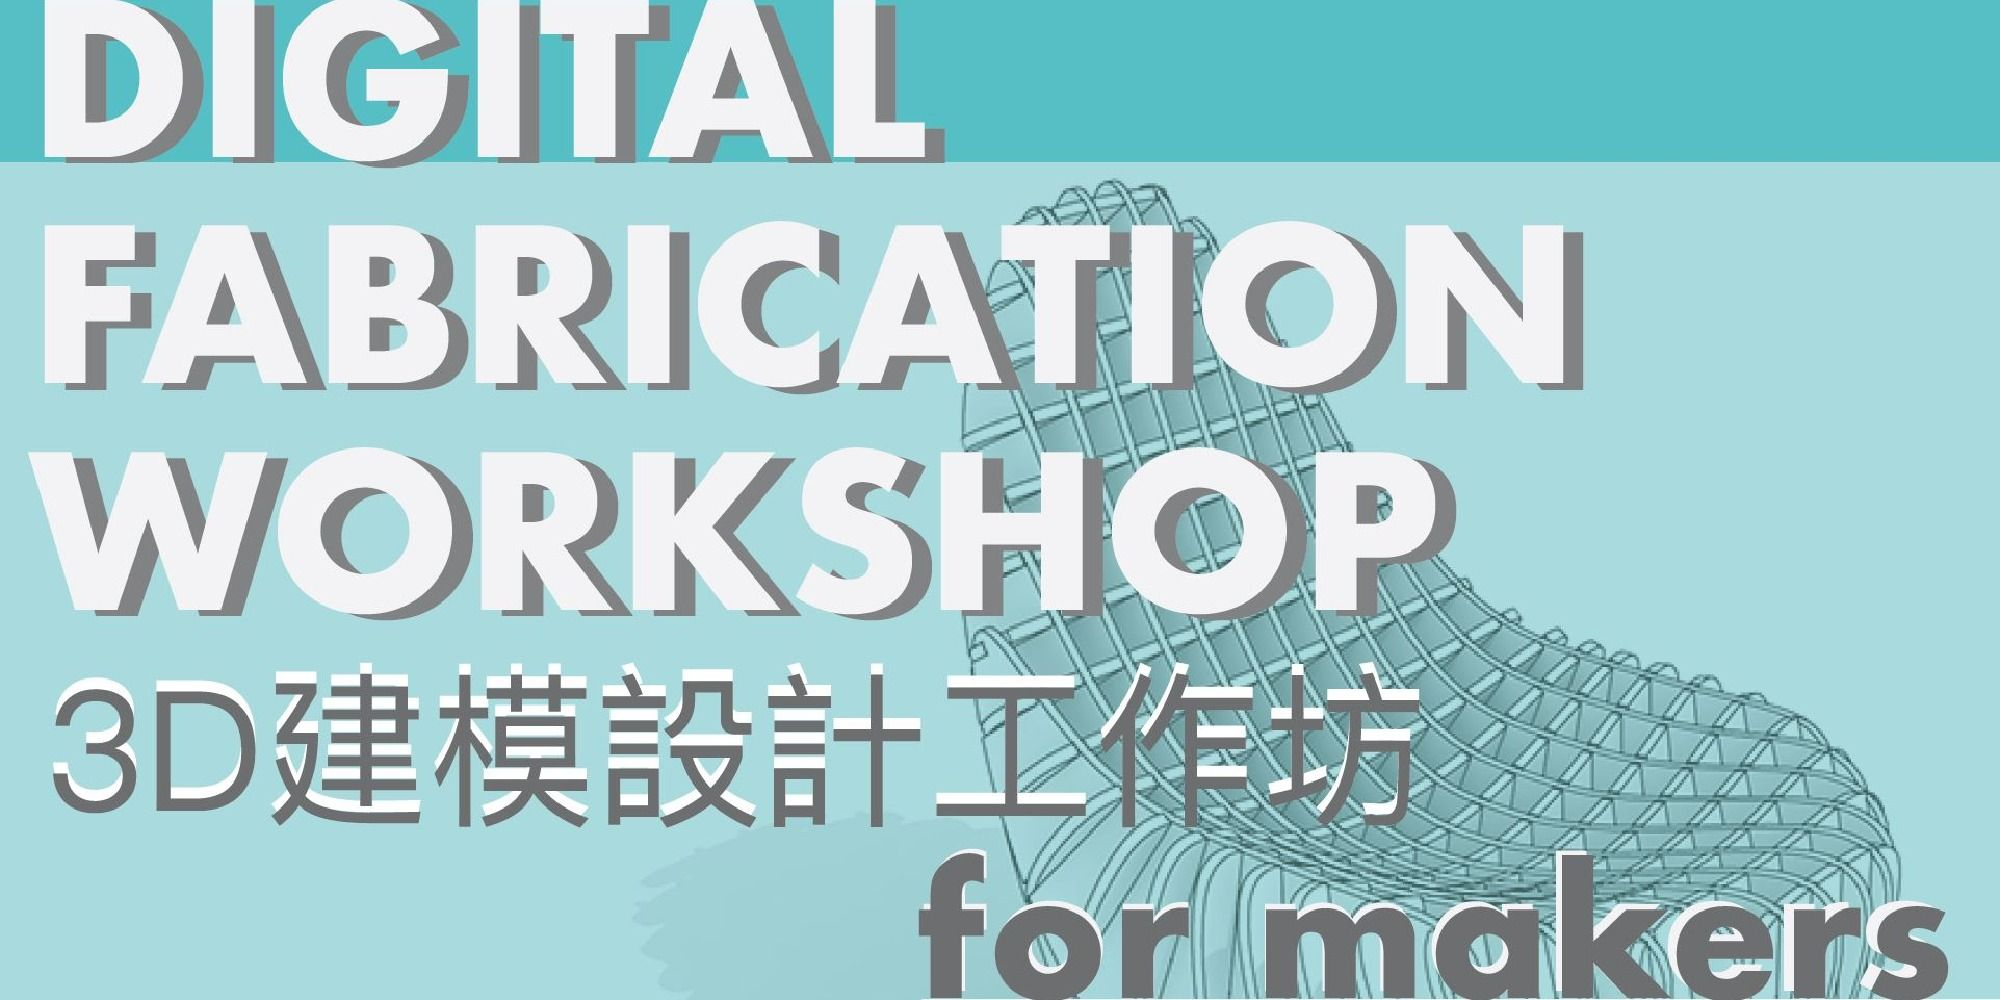 Digital Fabrication Workshop for Makers 3D建模設計工作坊